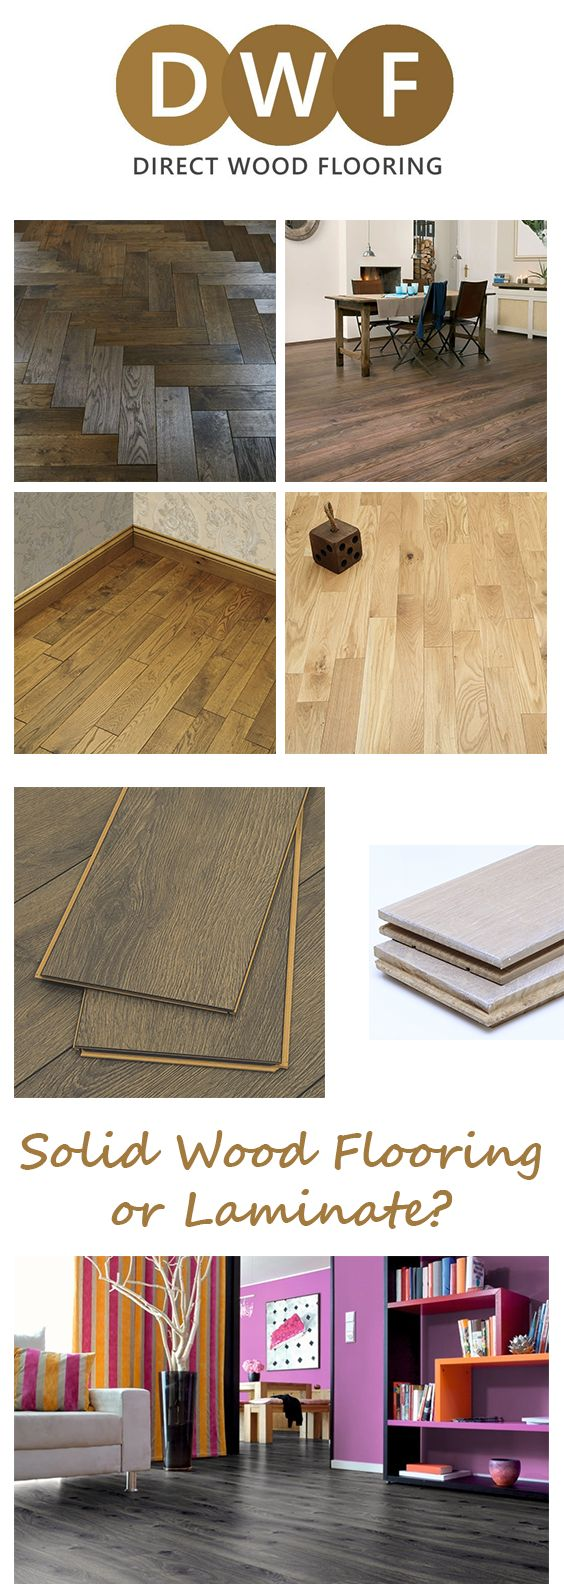 🤔 Solid Wood Flooring or Laminate?     We've weighed up the differences to help you make your decision. Take a read on the Direct Wood Flooring blog 🖱